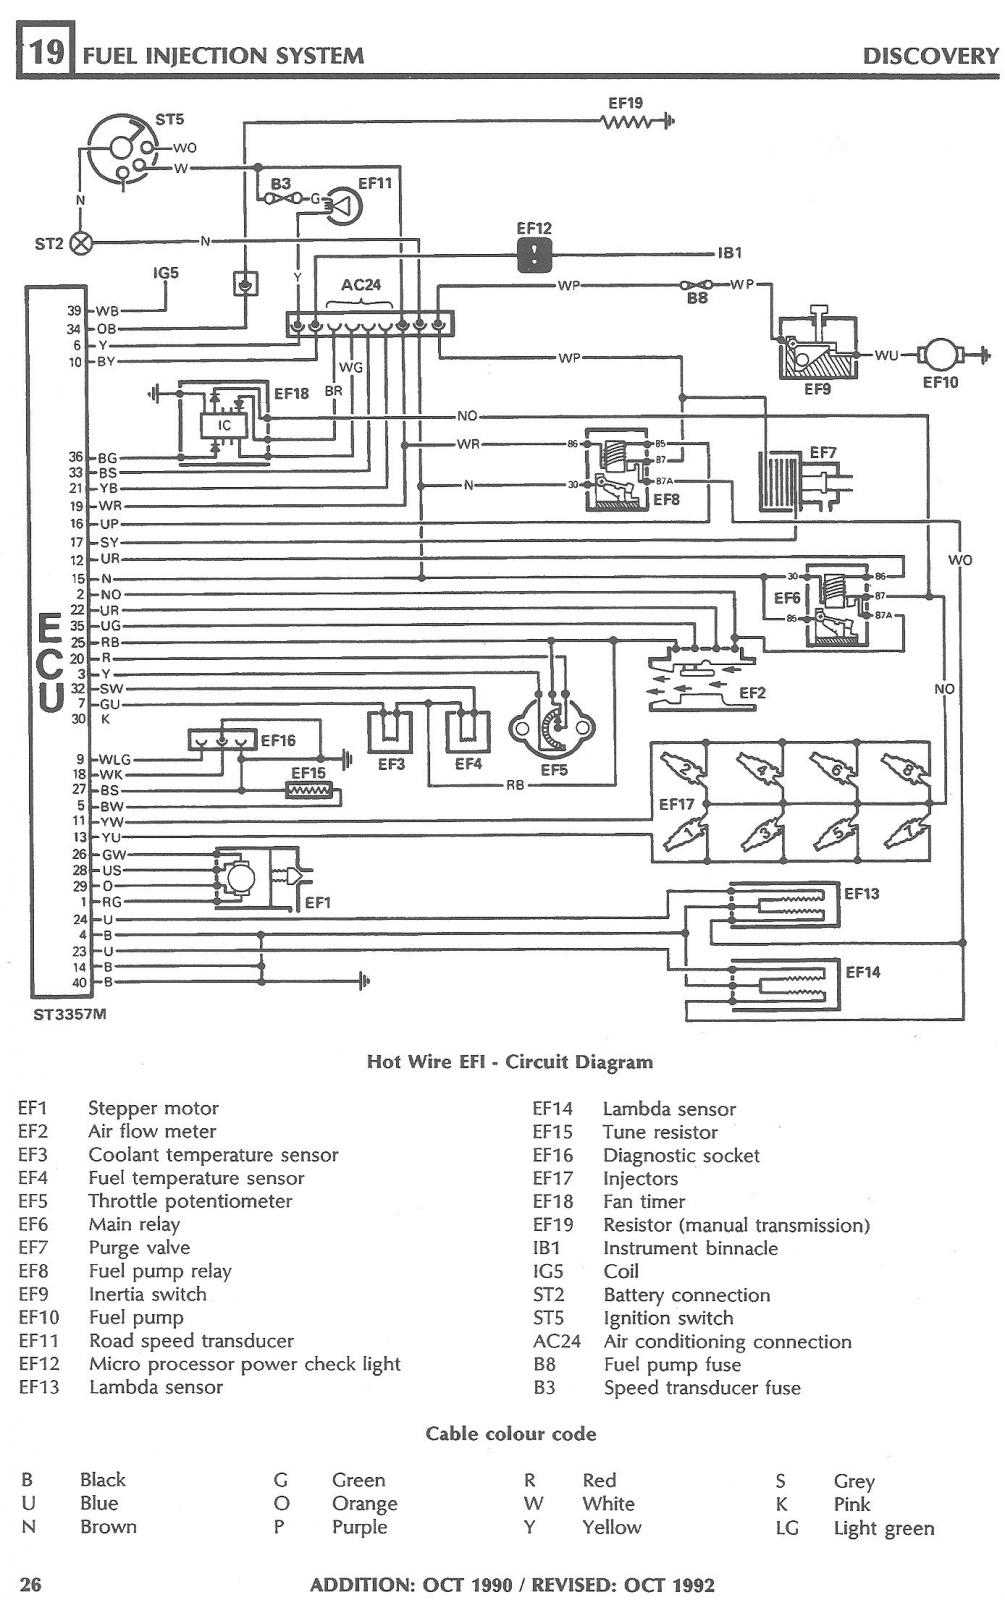 [QNCB_7524]  Discovery 1 3.5v8 efi diagram wanted - Discovery Forum - LR4x4 - The Land  Rover Forum | Rover V8 Fuel Injection Wiring Diagram |  | LR4x4